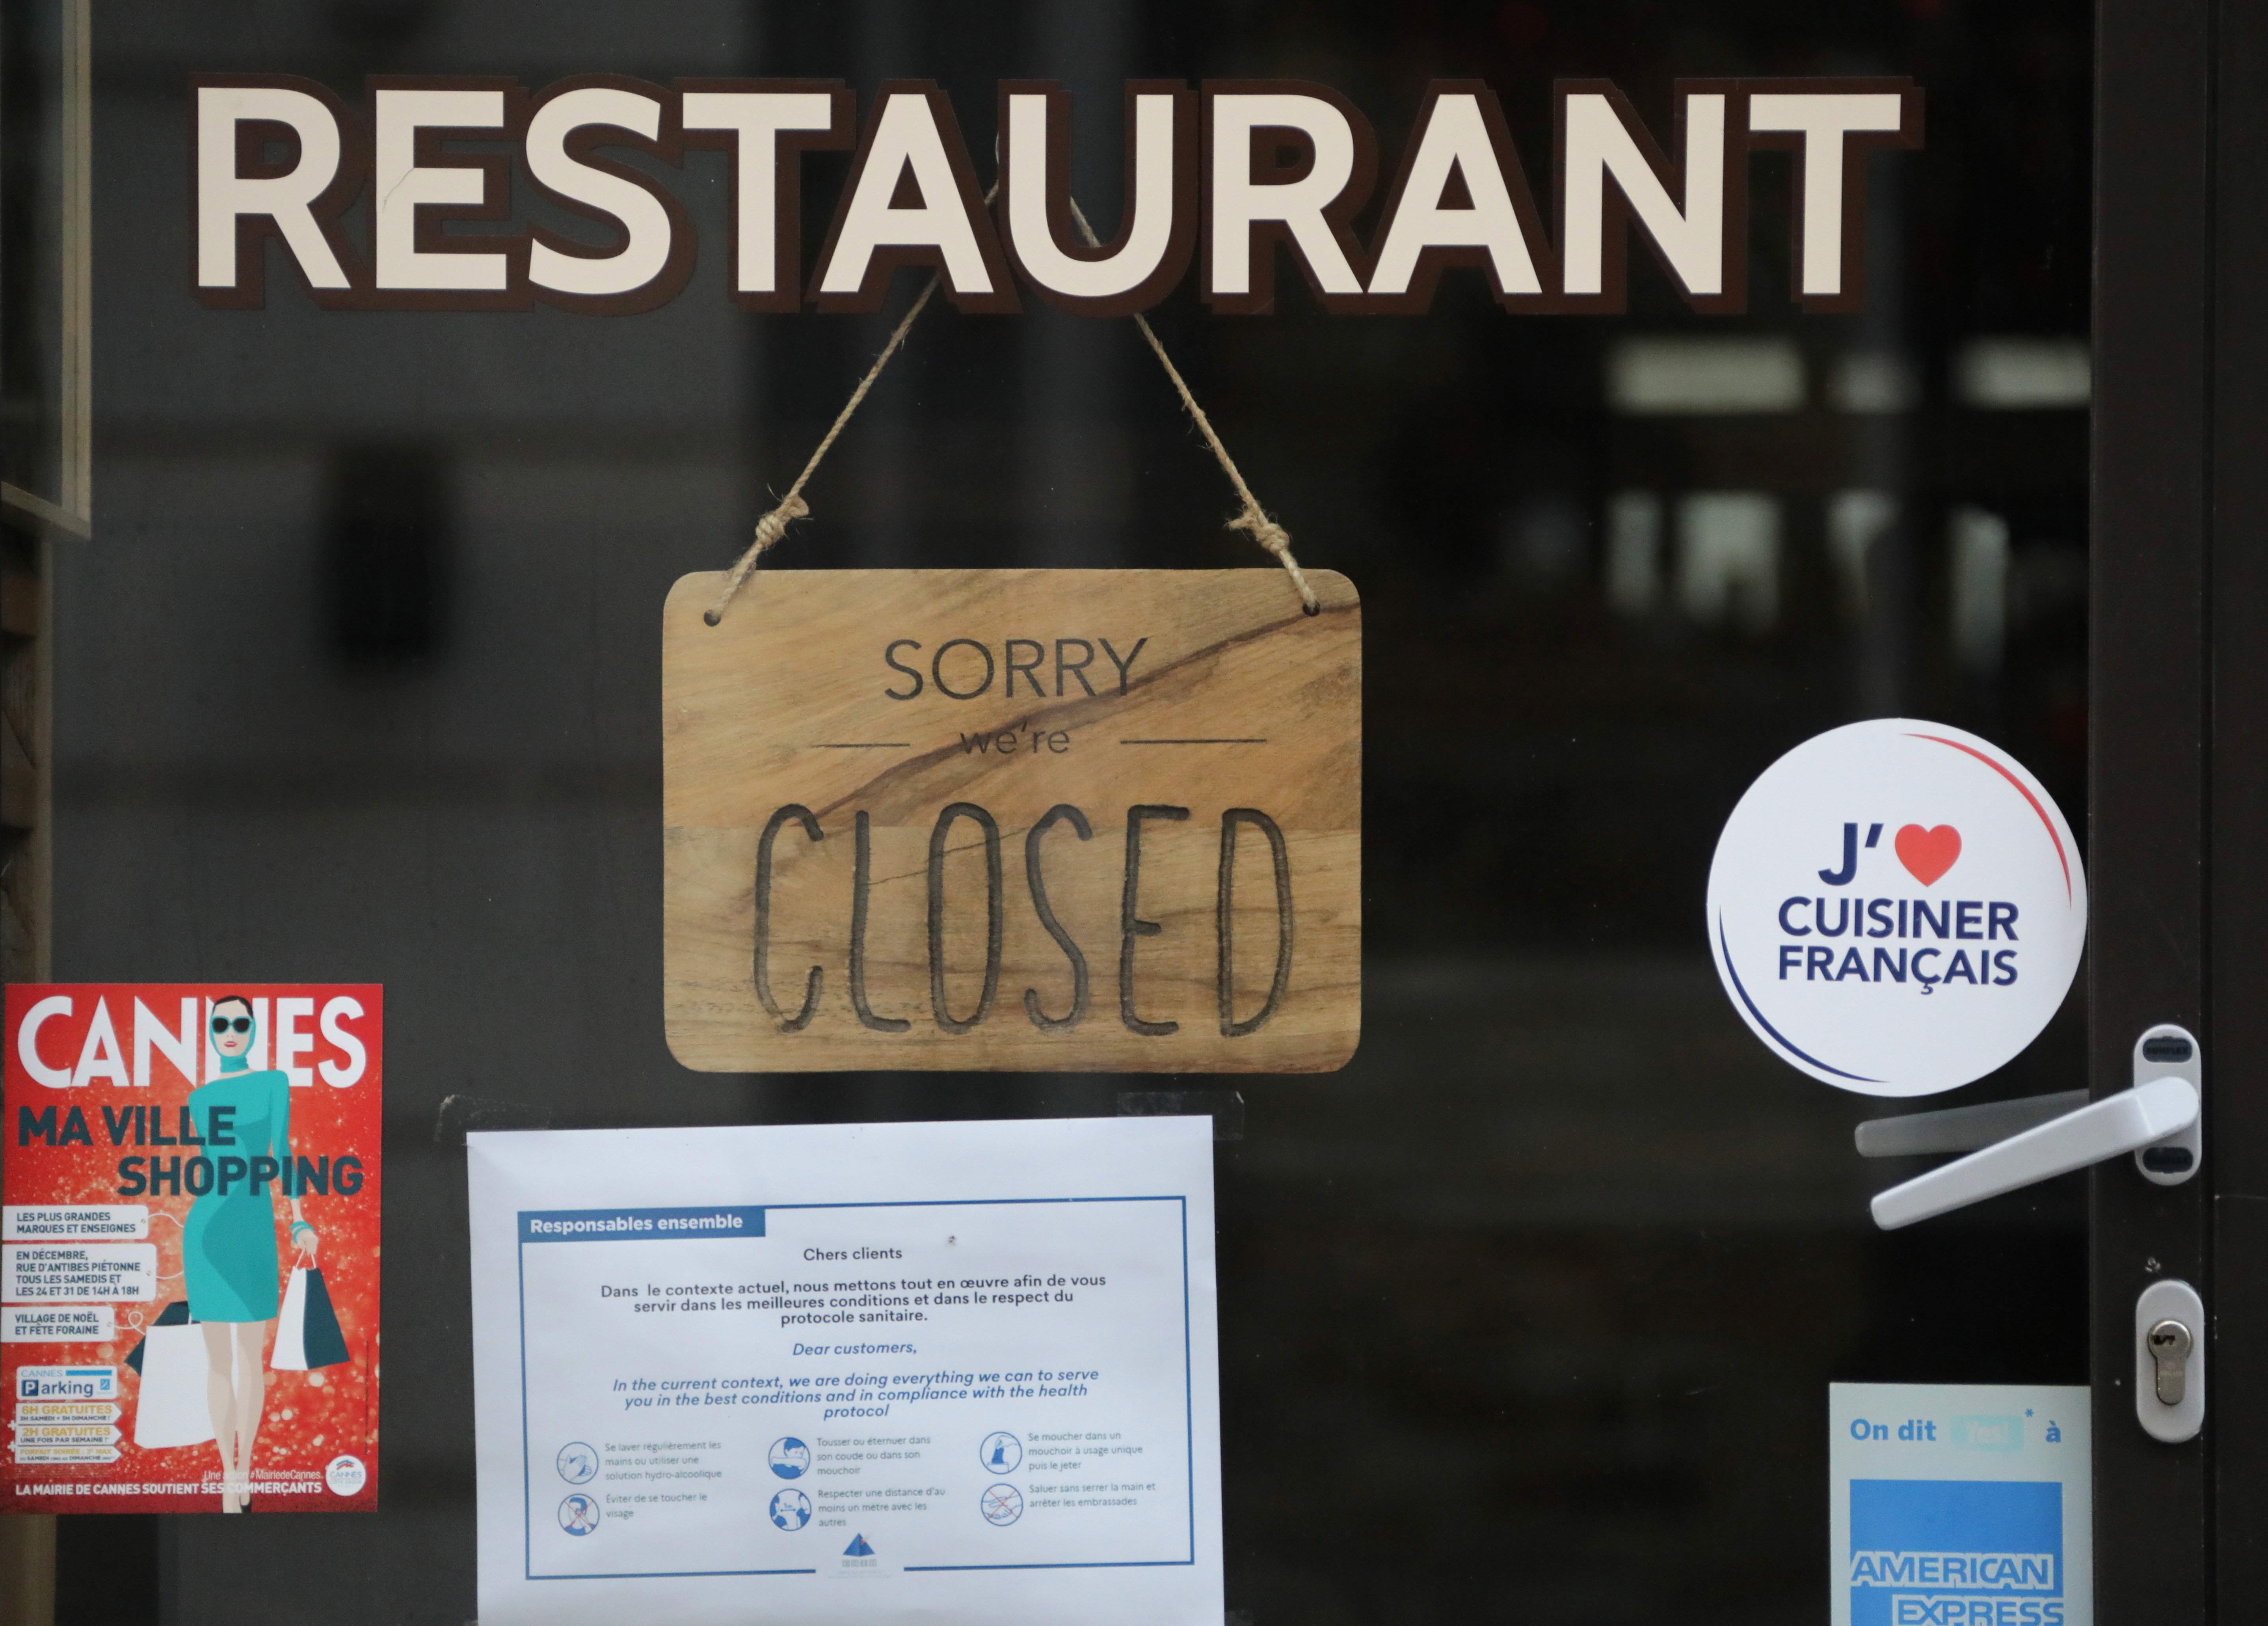 """A sign reading """"Sorry, we are closed"""" is seen on a closed restaurant in Cannes as the French government keeps bars and restaurants closed as part of COVID-19 restrictions measures to fight the coronavirus disease outbreak in France, January 11, 2021. REUTERS/Eric Gaillard - RC2S5L9ZJ0J1"""